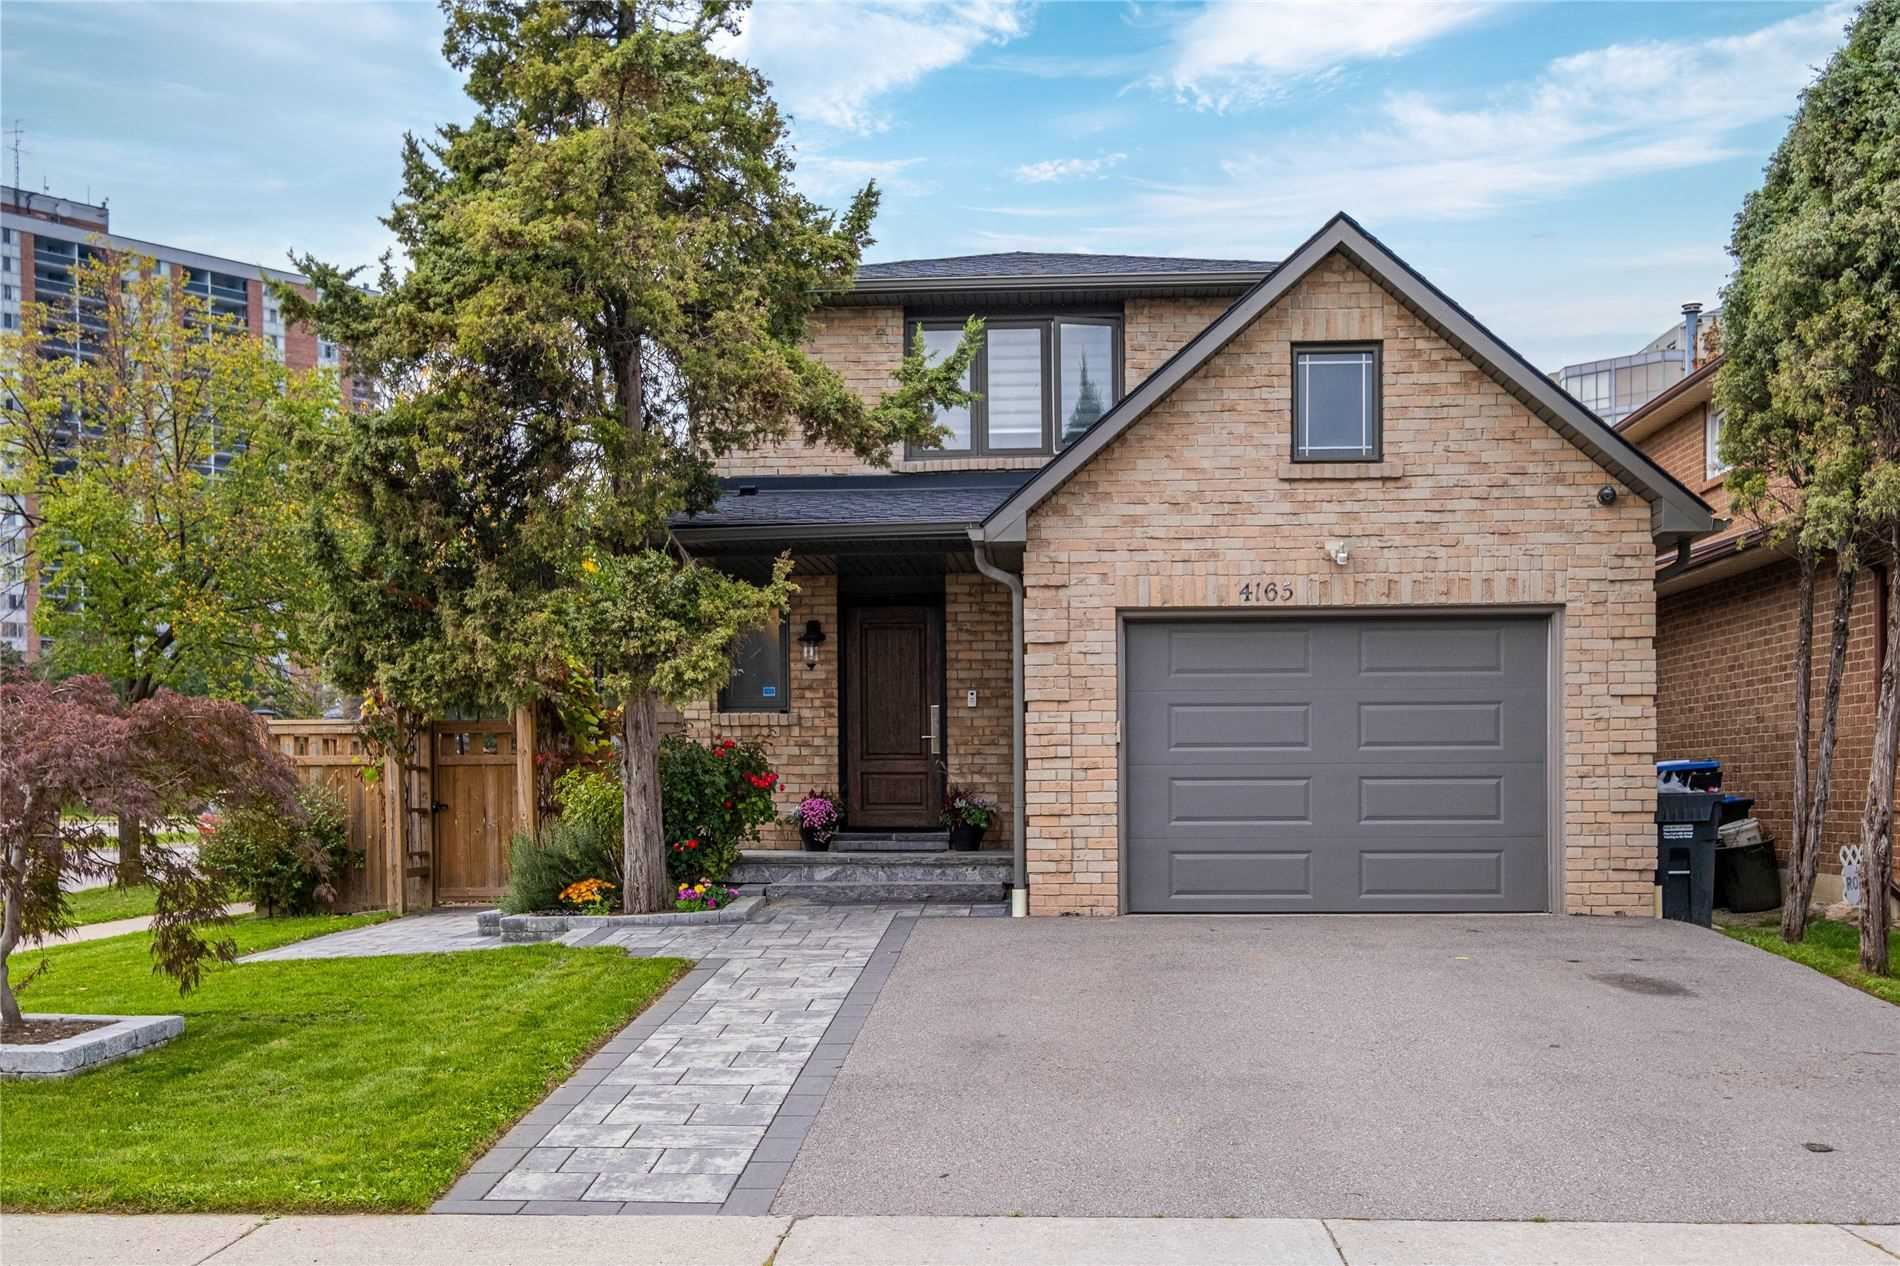 4165 Ottewell Cres, Mississauga, ON L4W4A4 - MLS#: W5403935